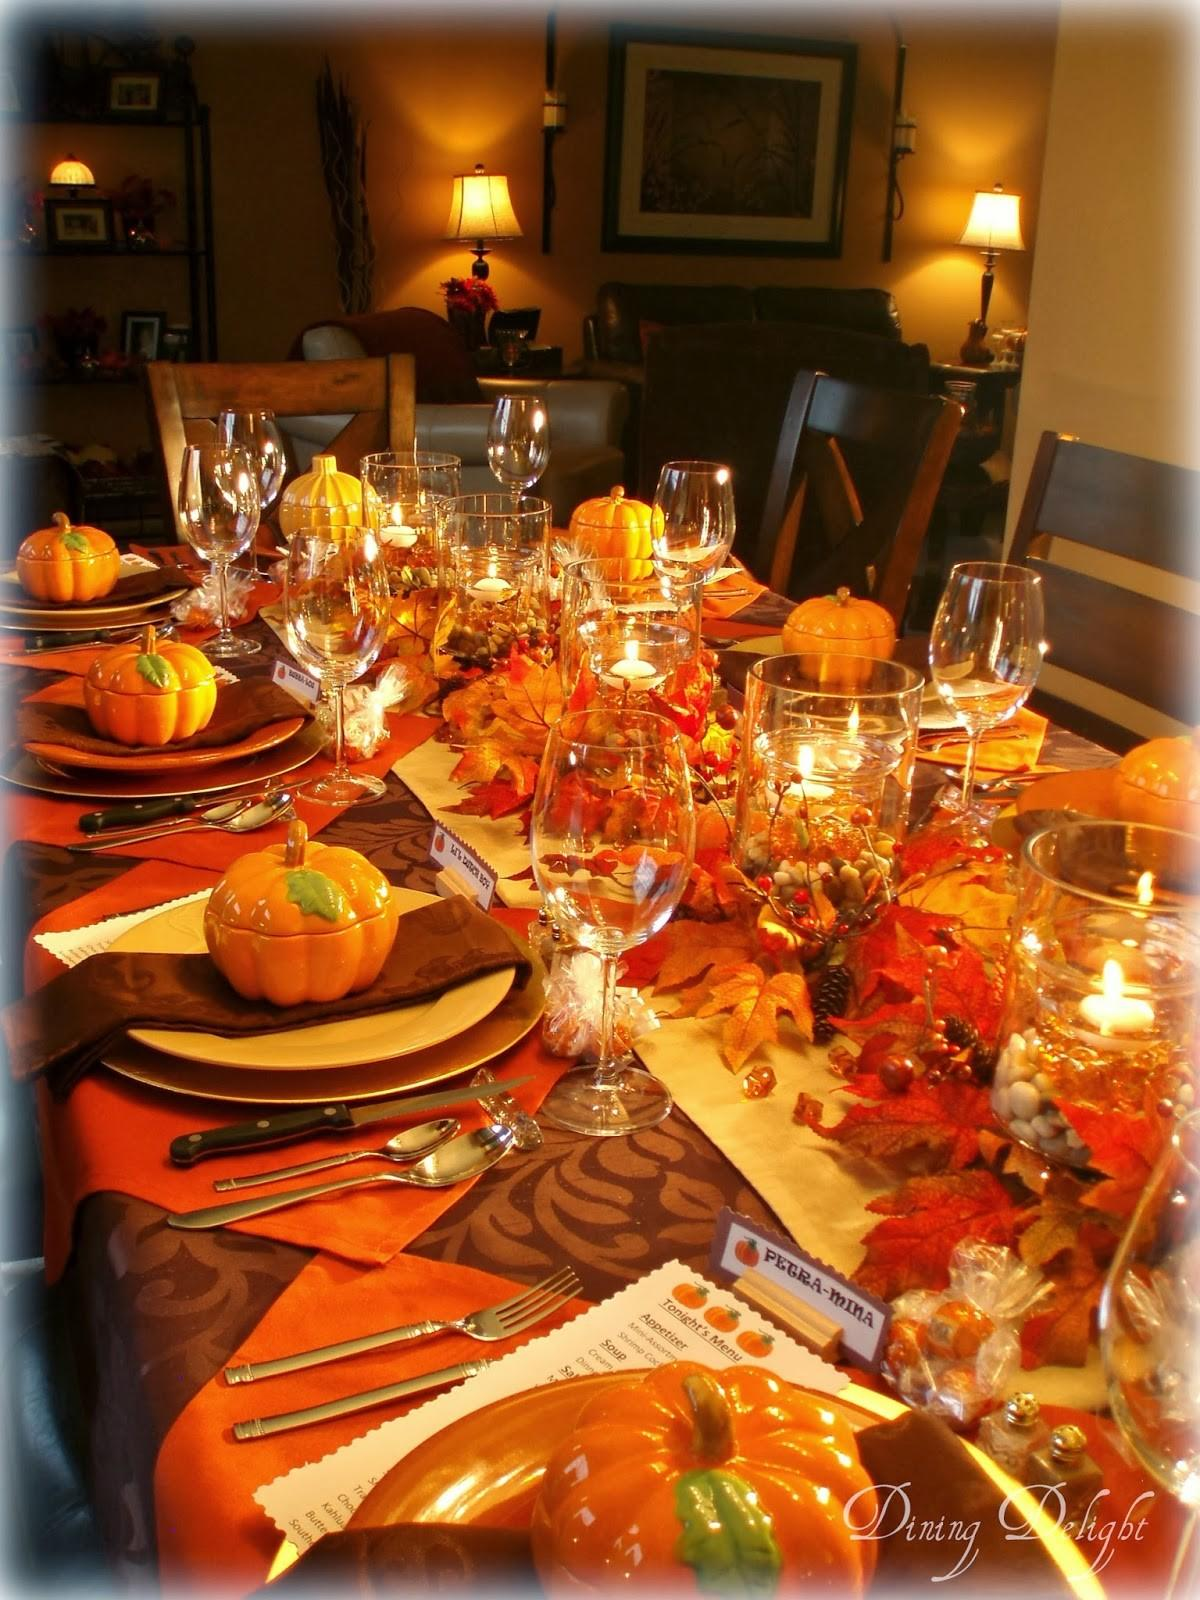 Dining Delight Fall Dinner Party Ten